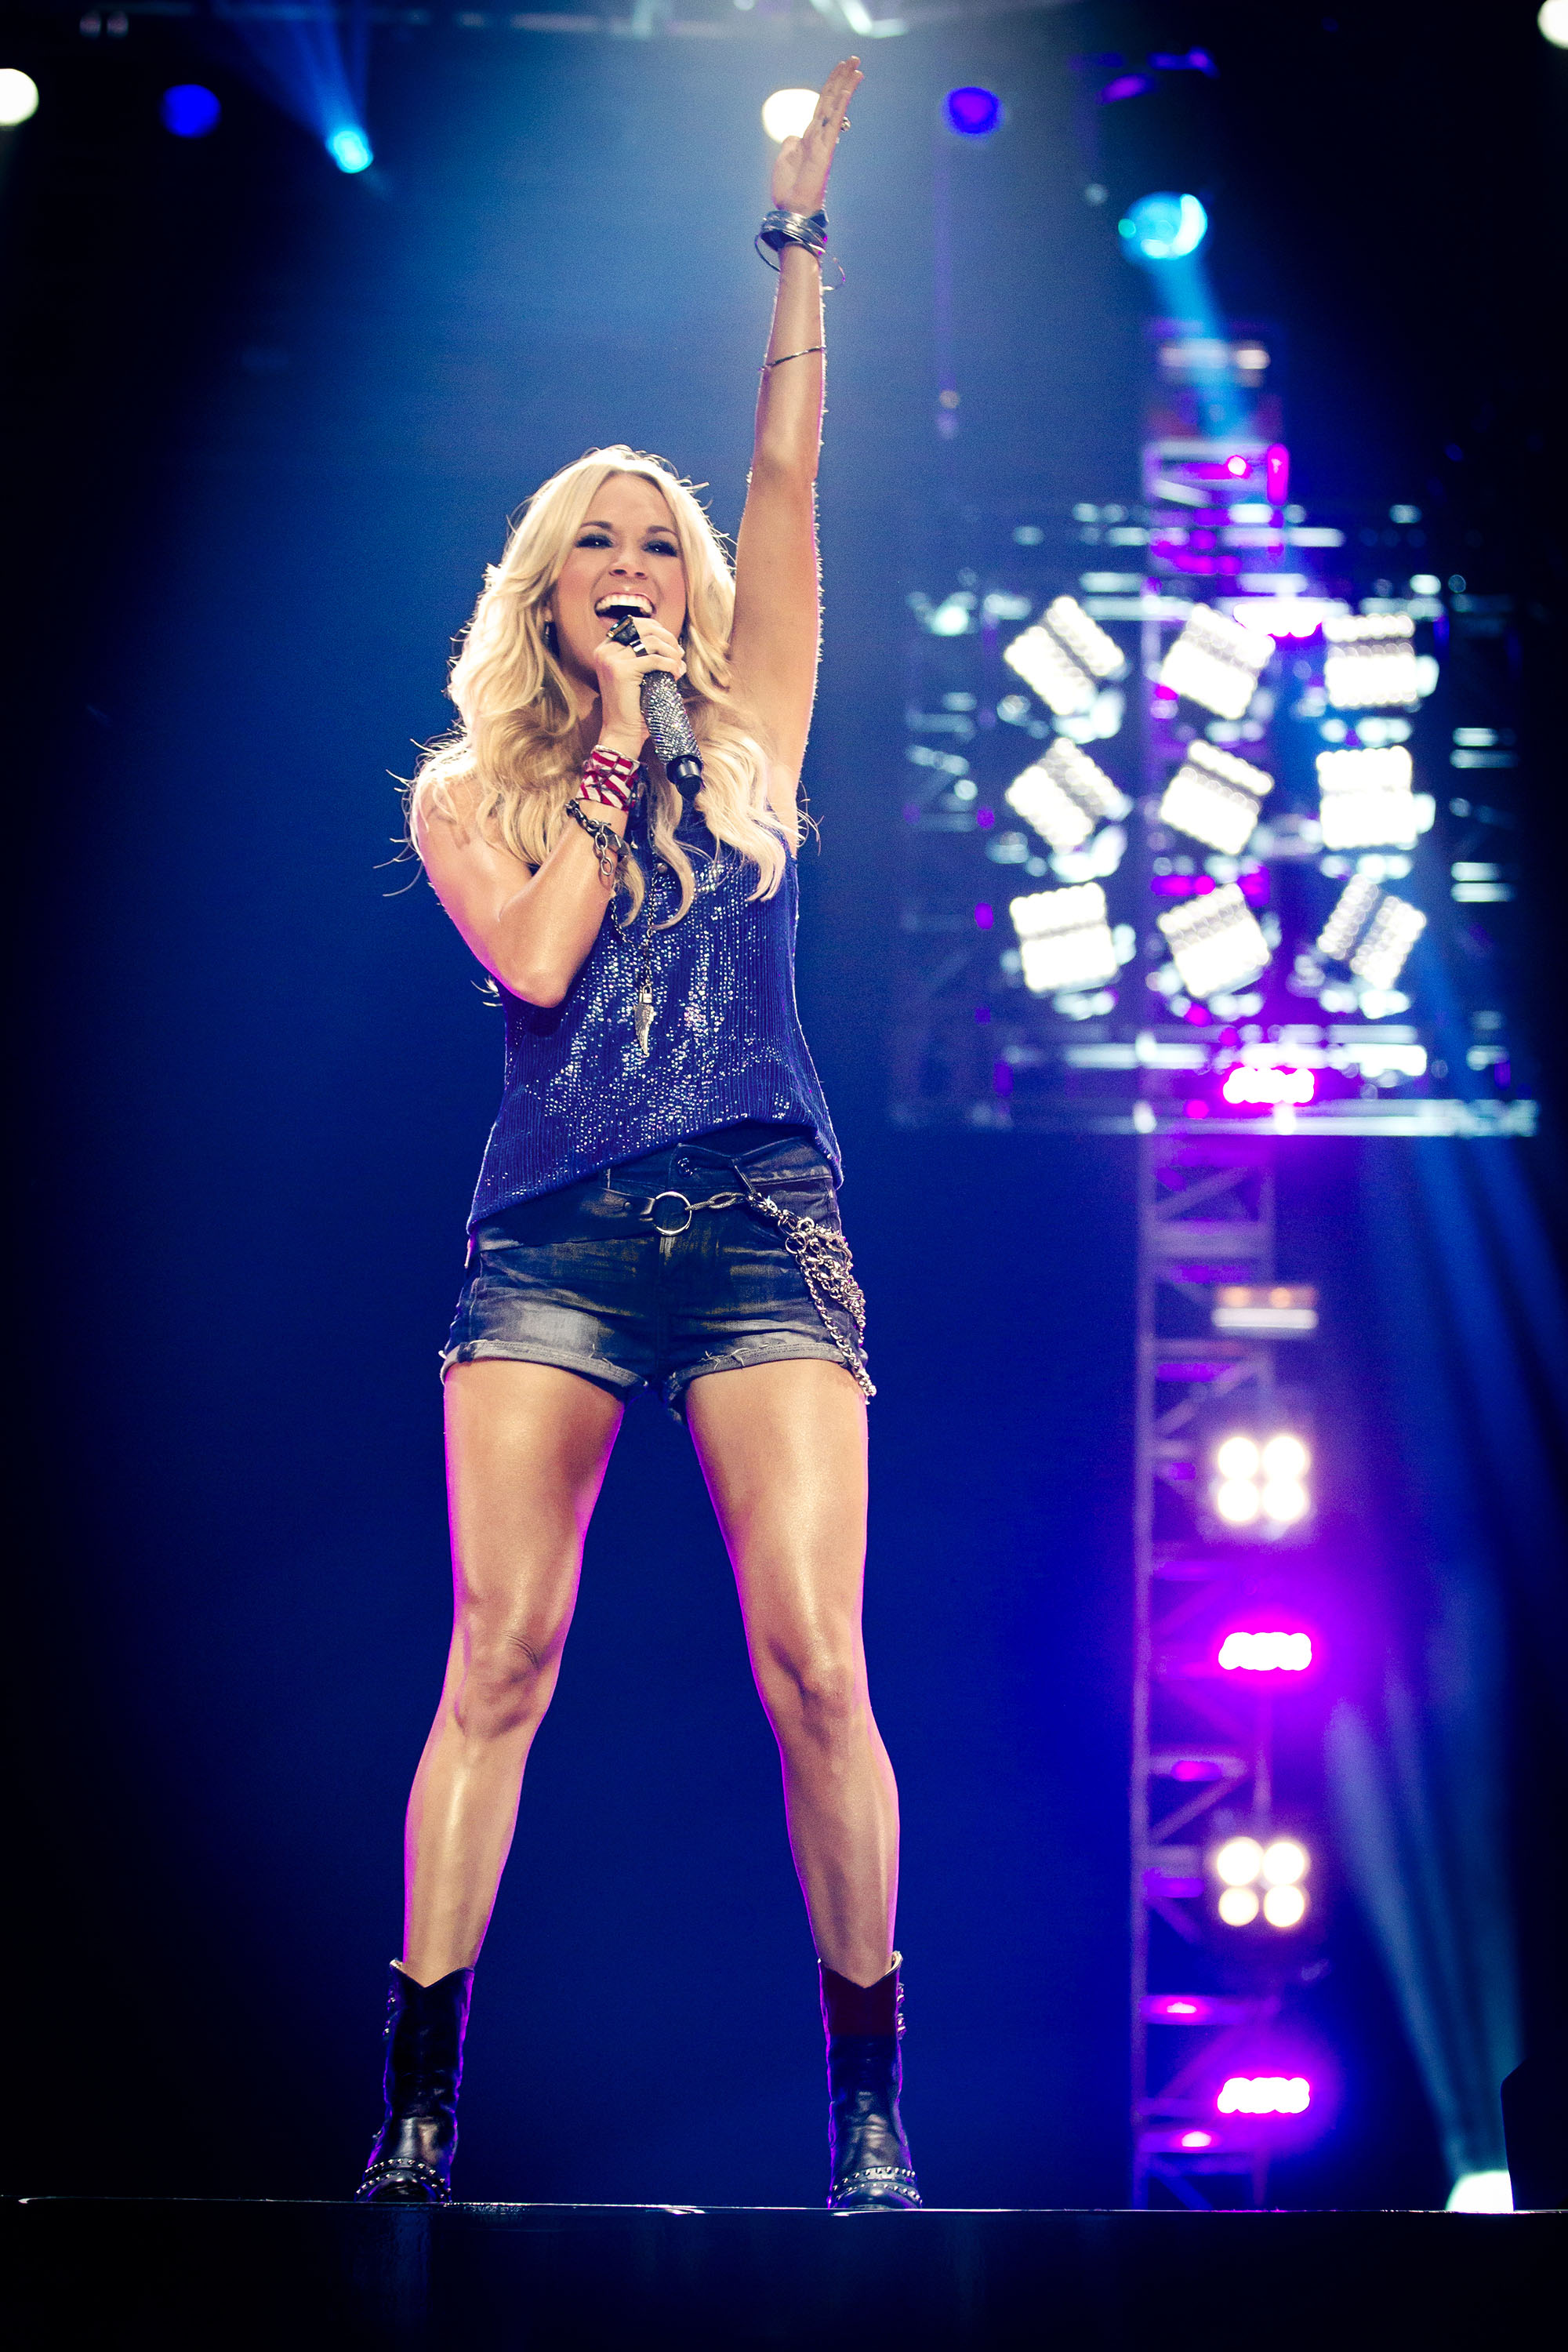 Carrie Underwood Trips On Stage, But Scores NFL Gig!